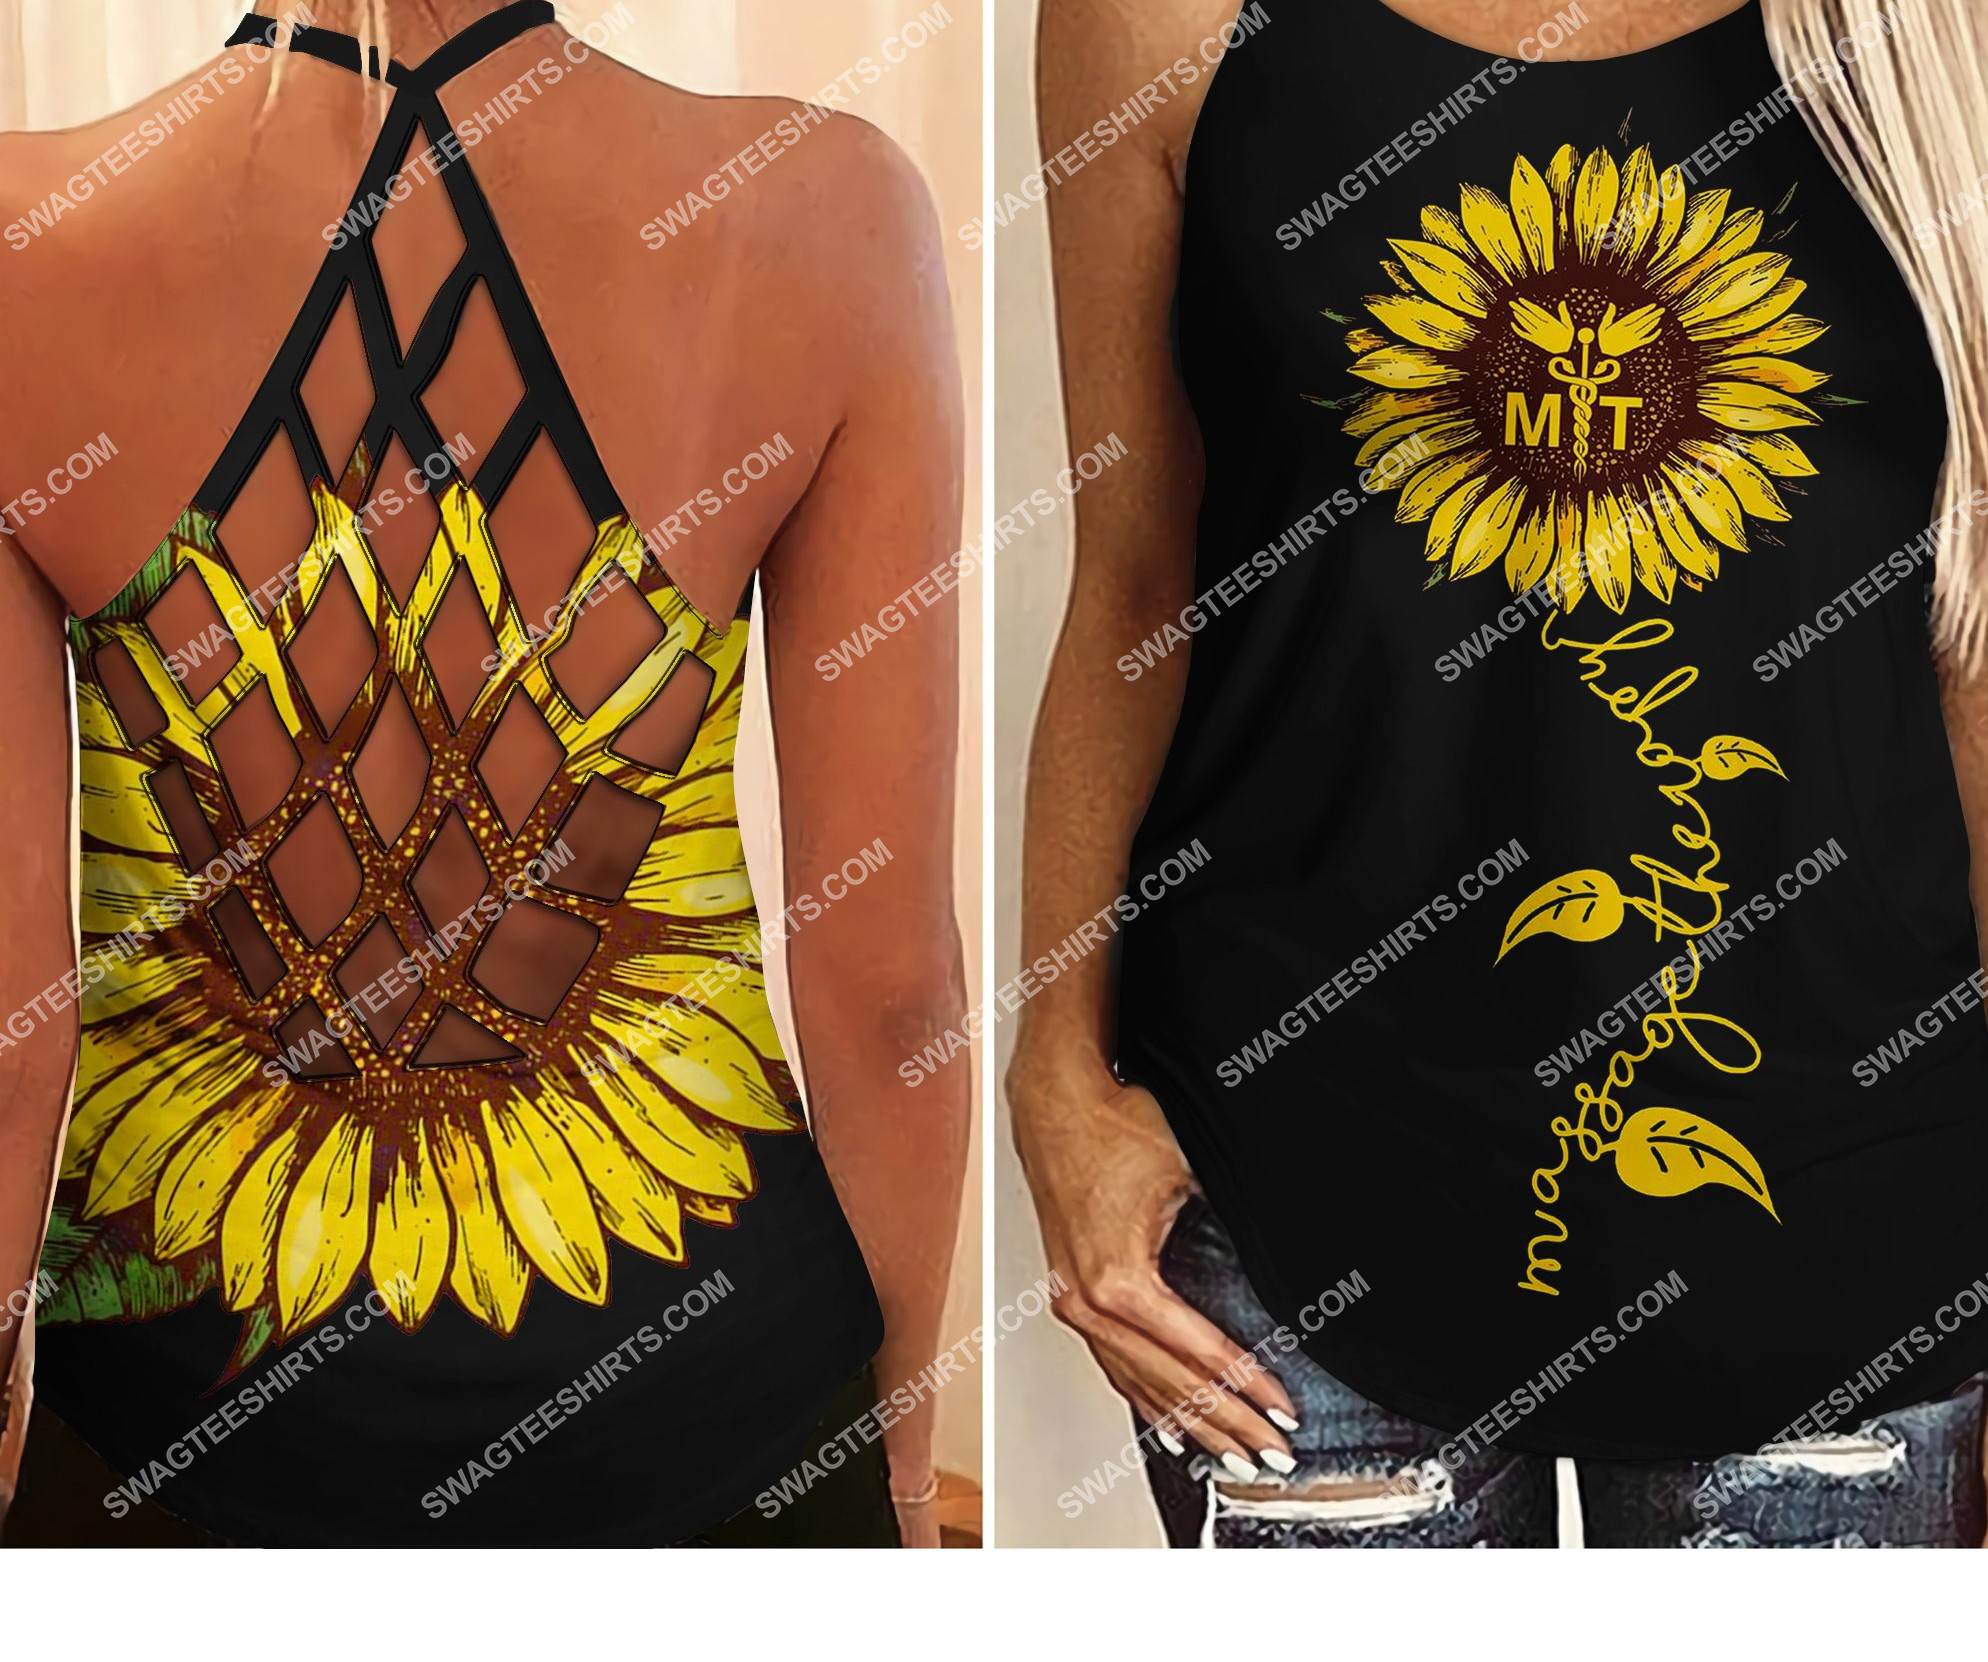 [Top-selling] massage therapist sunflower all over printed strappy back tank top - maria